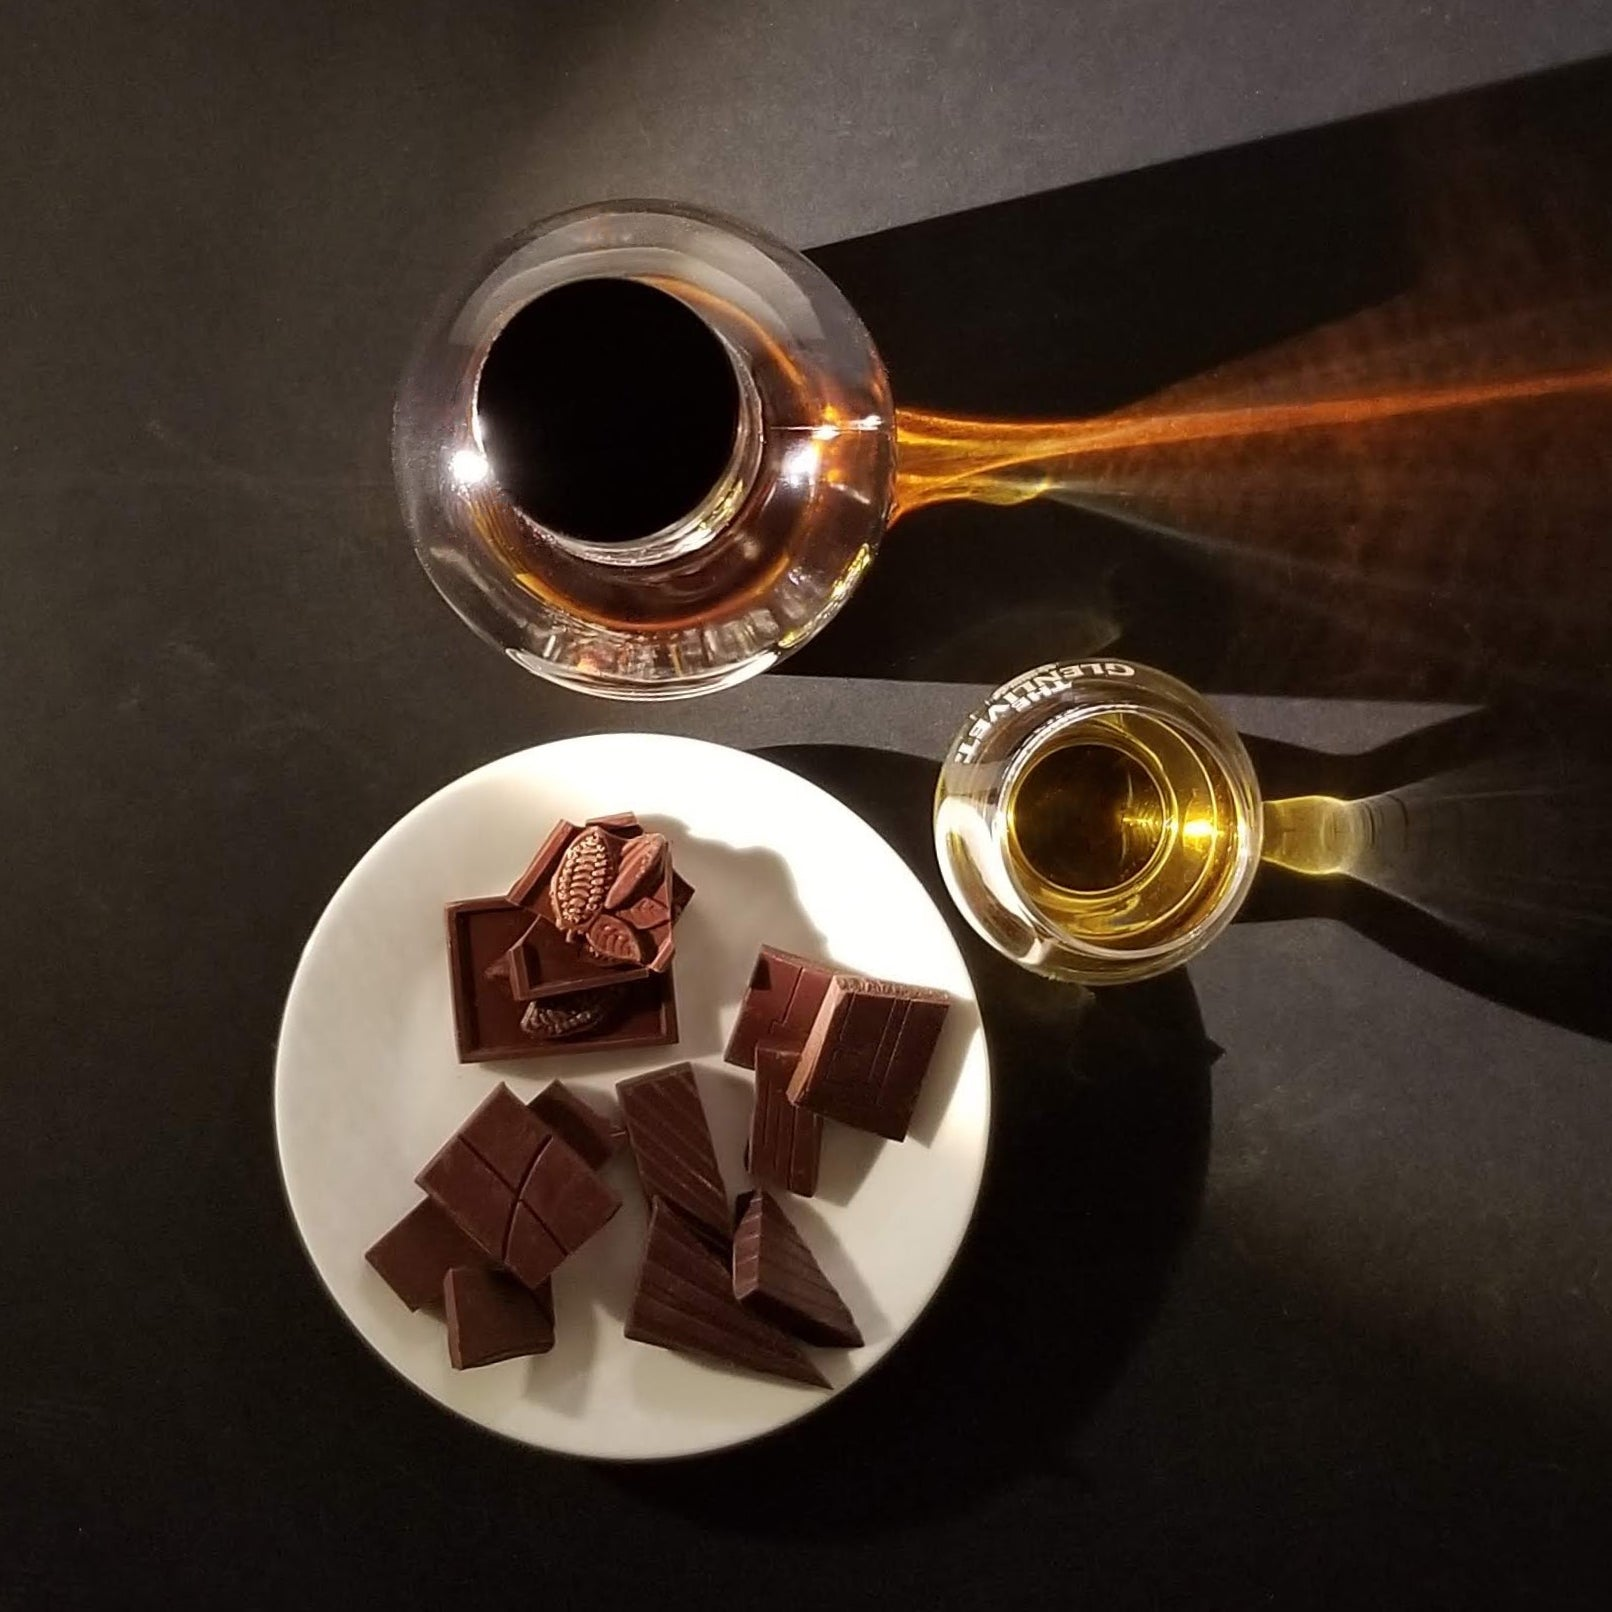 whisky and chocolate pairing notes, JoJo CoCo, Canada